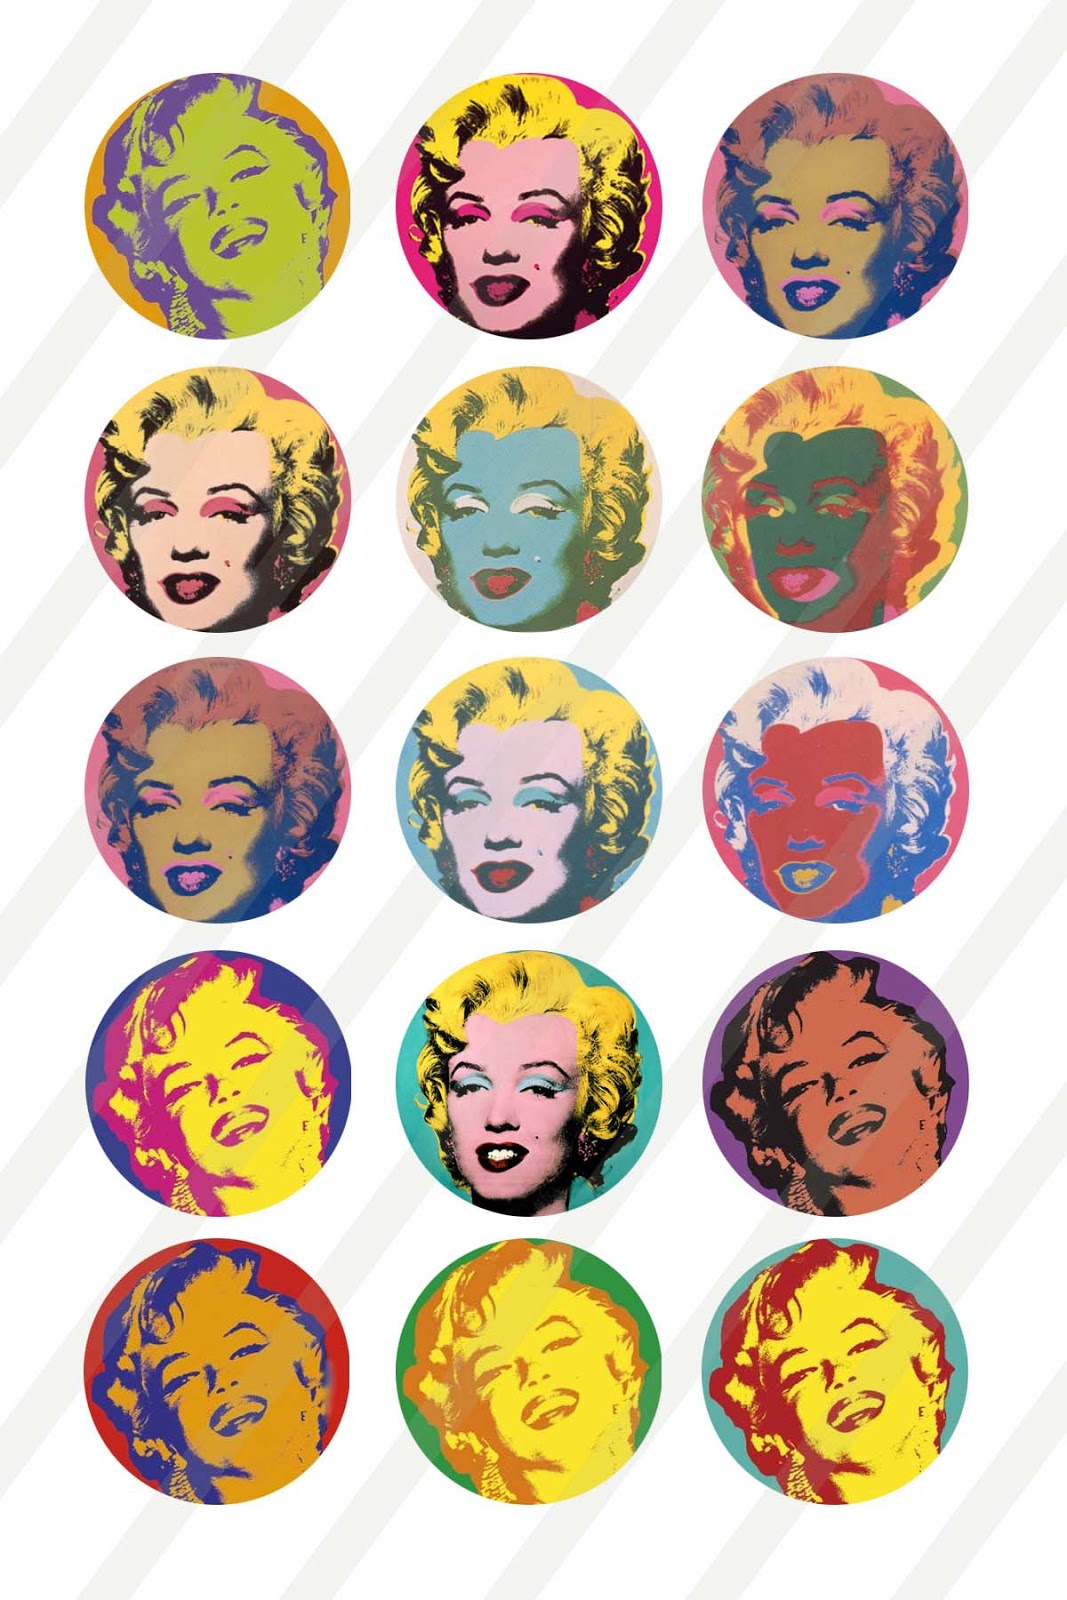 Nanistore Images For Bottle Caps Pendant Jewelry Cupcake Toppers Earrings Necklace